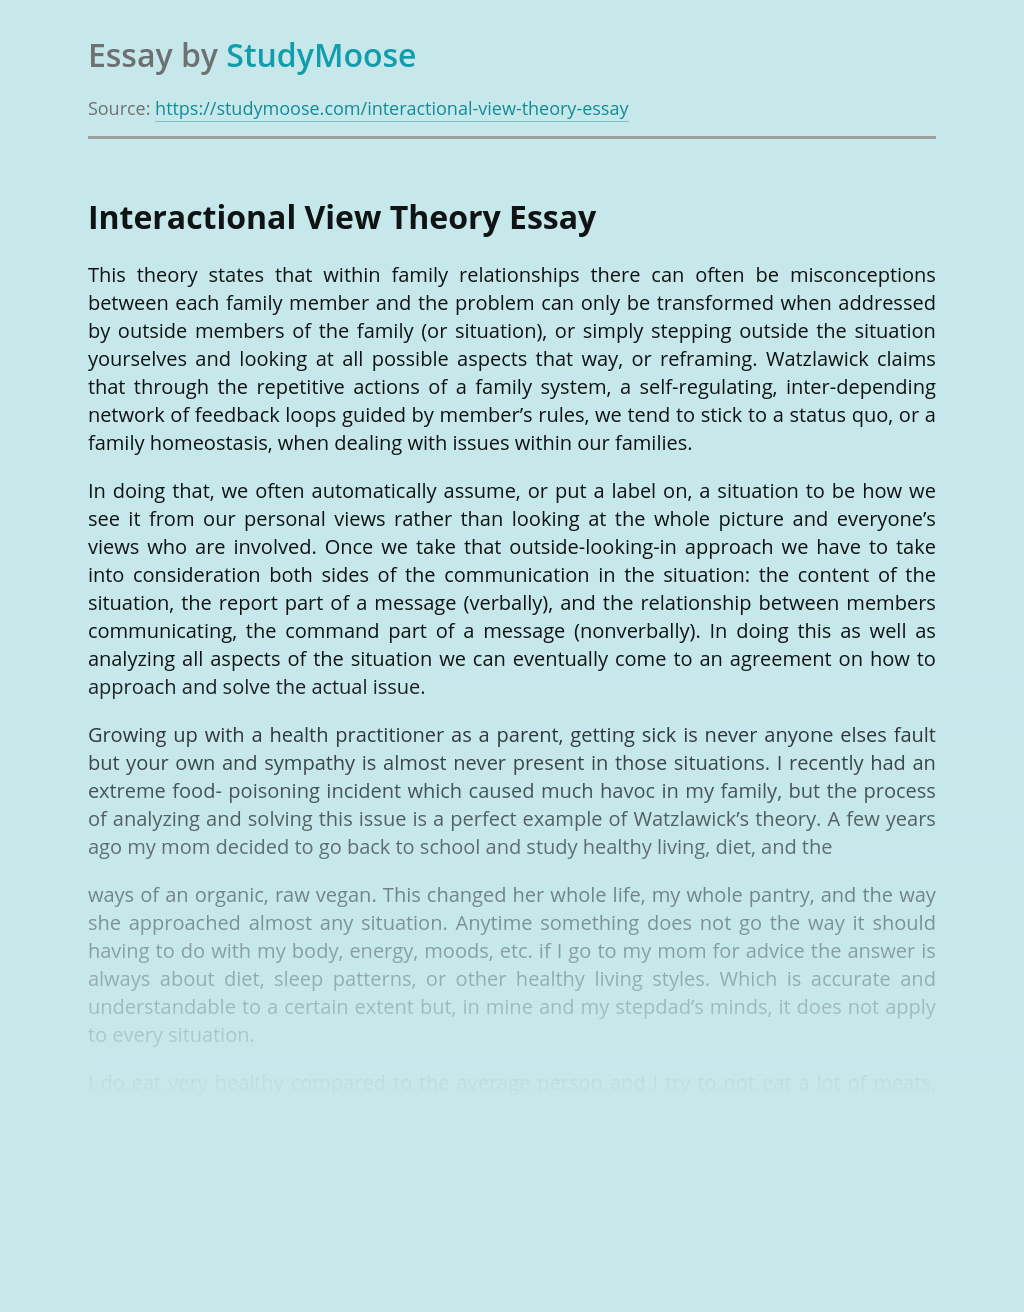 Interactional View Theory and My Family Relationships